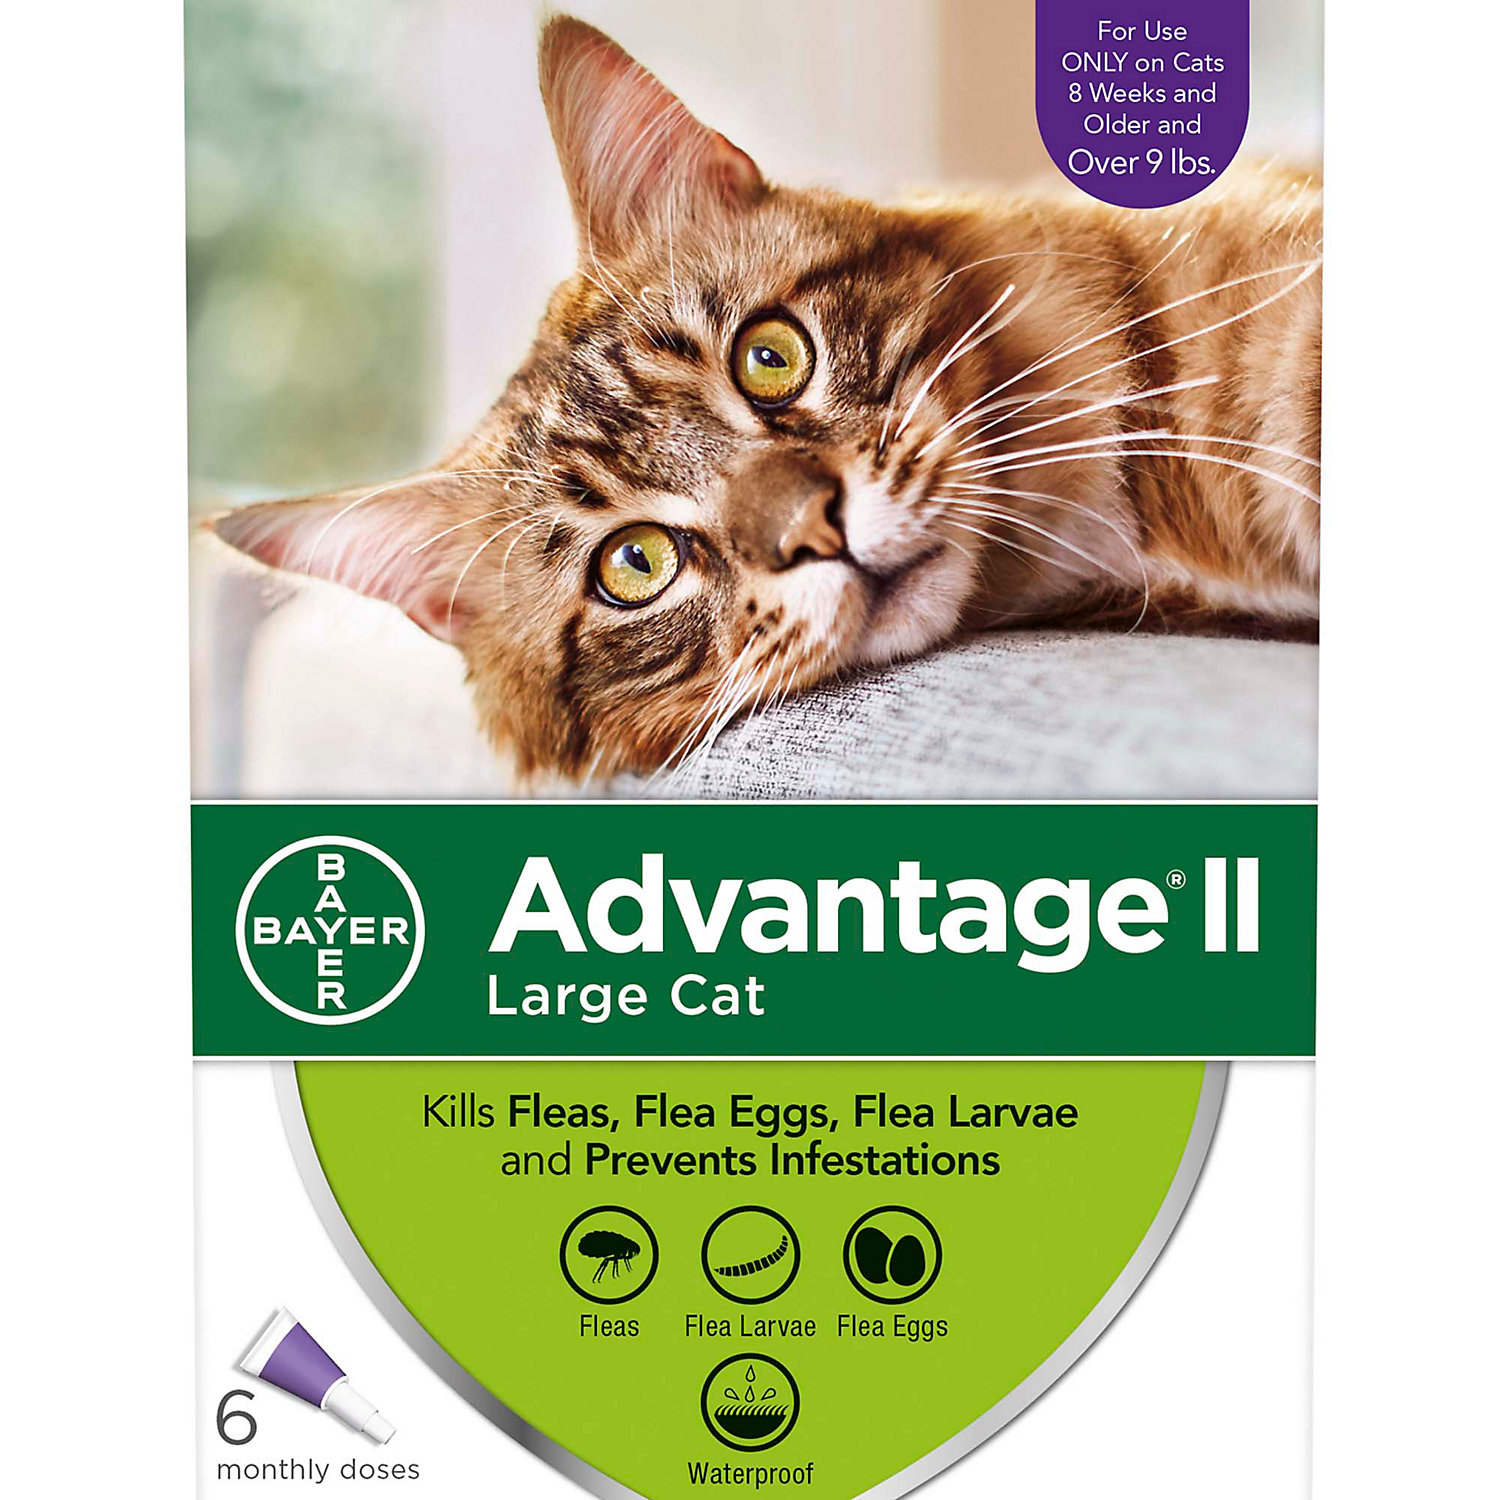 Advantage Ii Once A Month Topical Large Cat Flea Treatment 6 Mo. Over 9 Lbs.